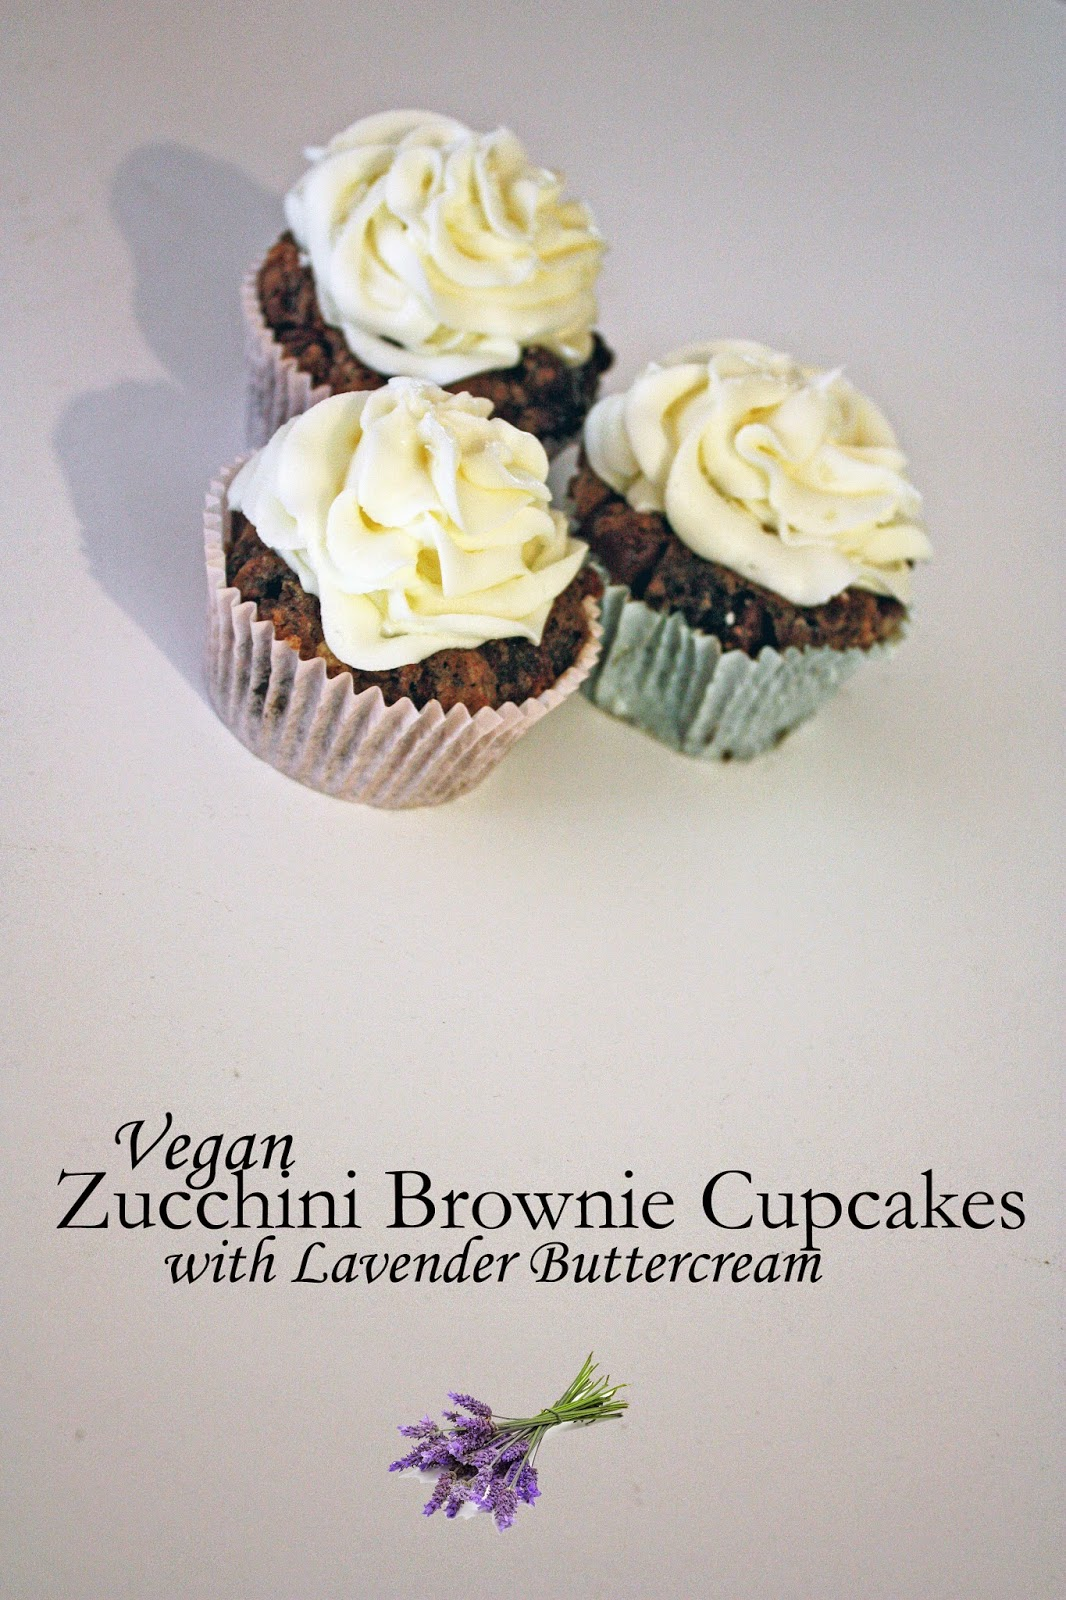 vegan zucchini brownie cupcakes with lavender buttercream